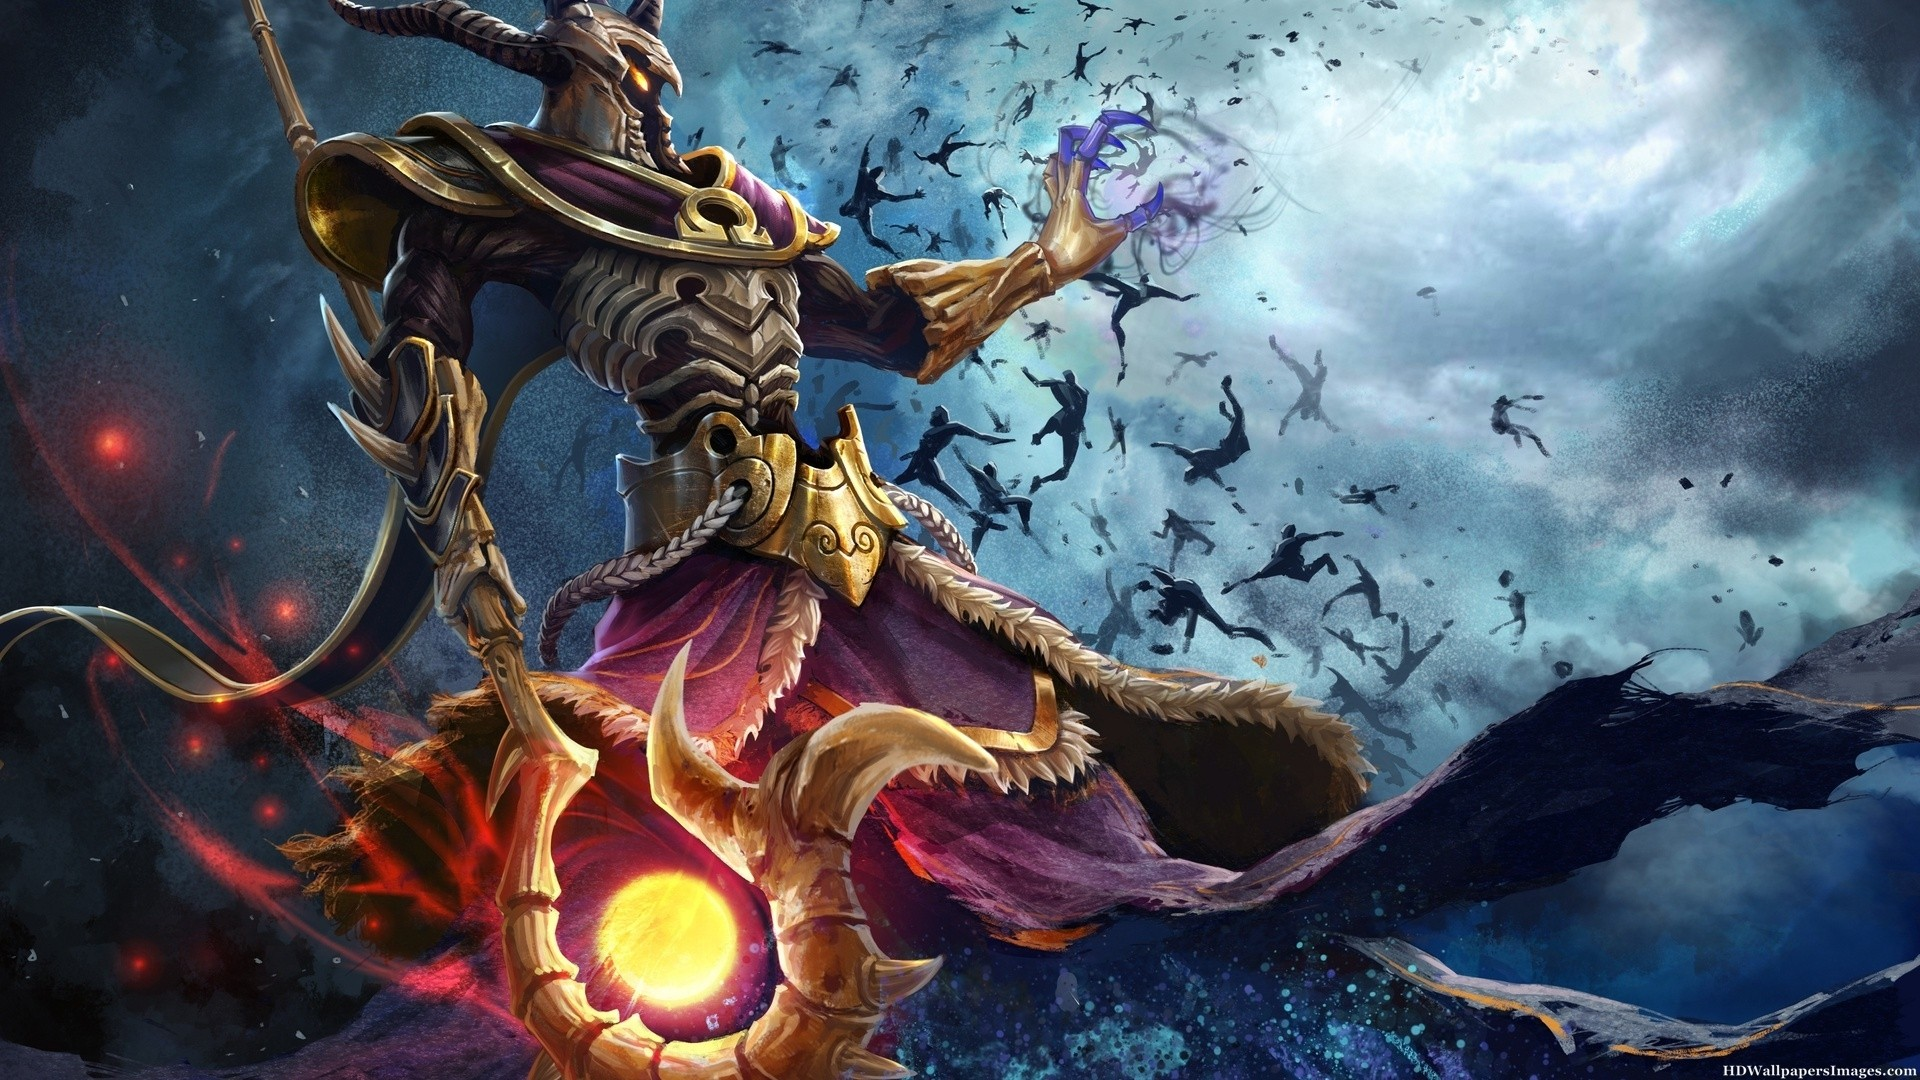 Smite HD Wallpaper | Background Image | 1920x1080 | ID:759115 - Wallpaper Abyss